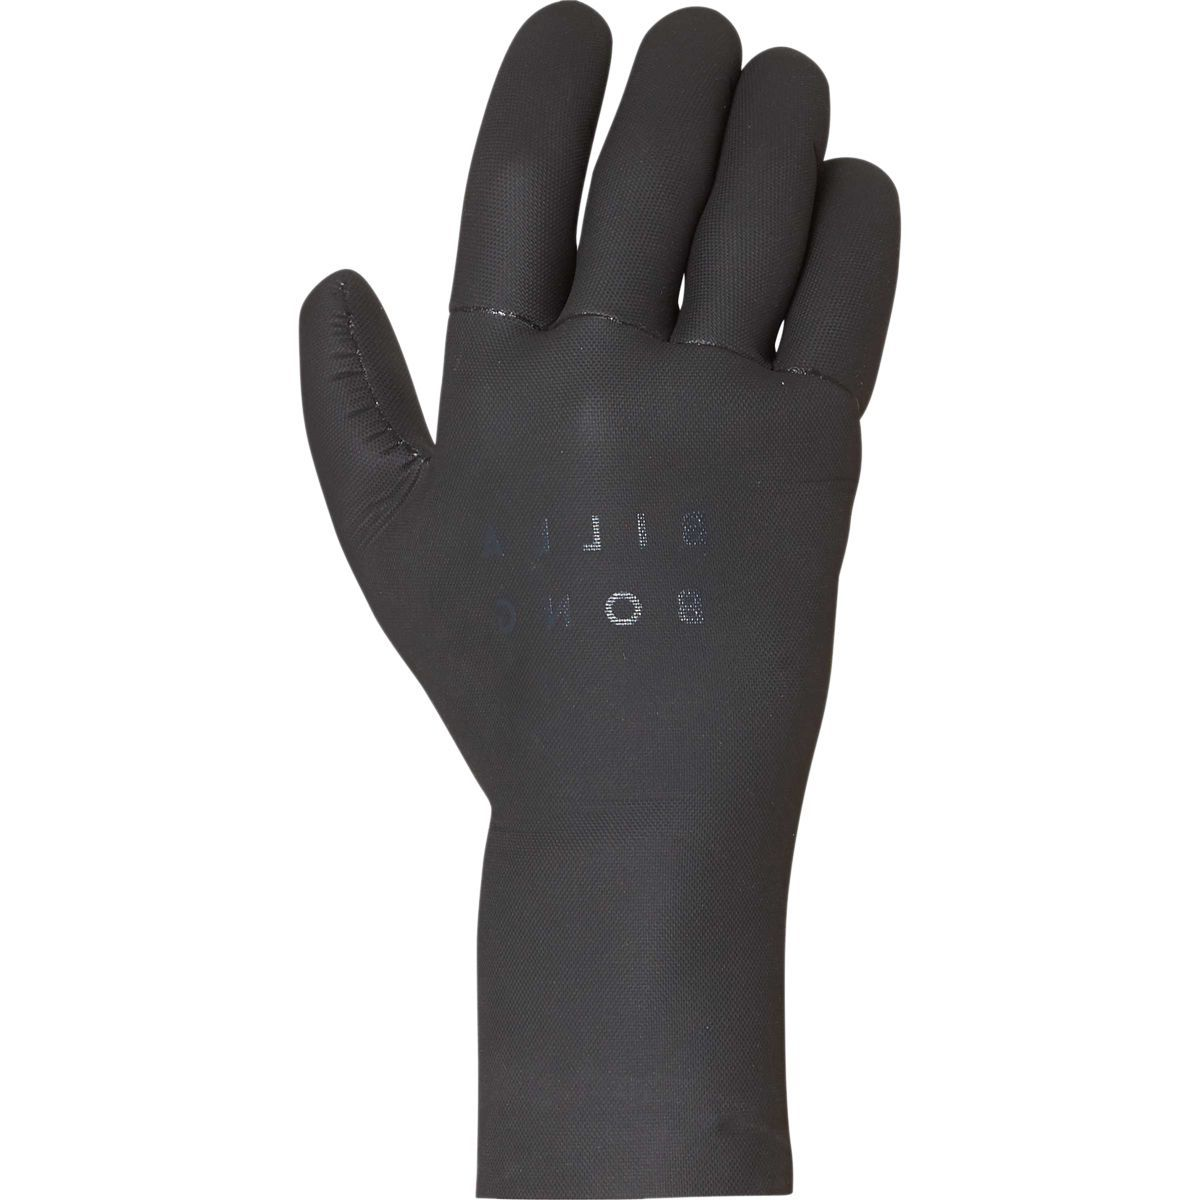 Billabong 2mm Absolute 5 Finger Glove - Men's